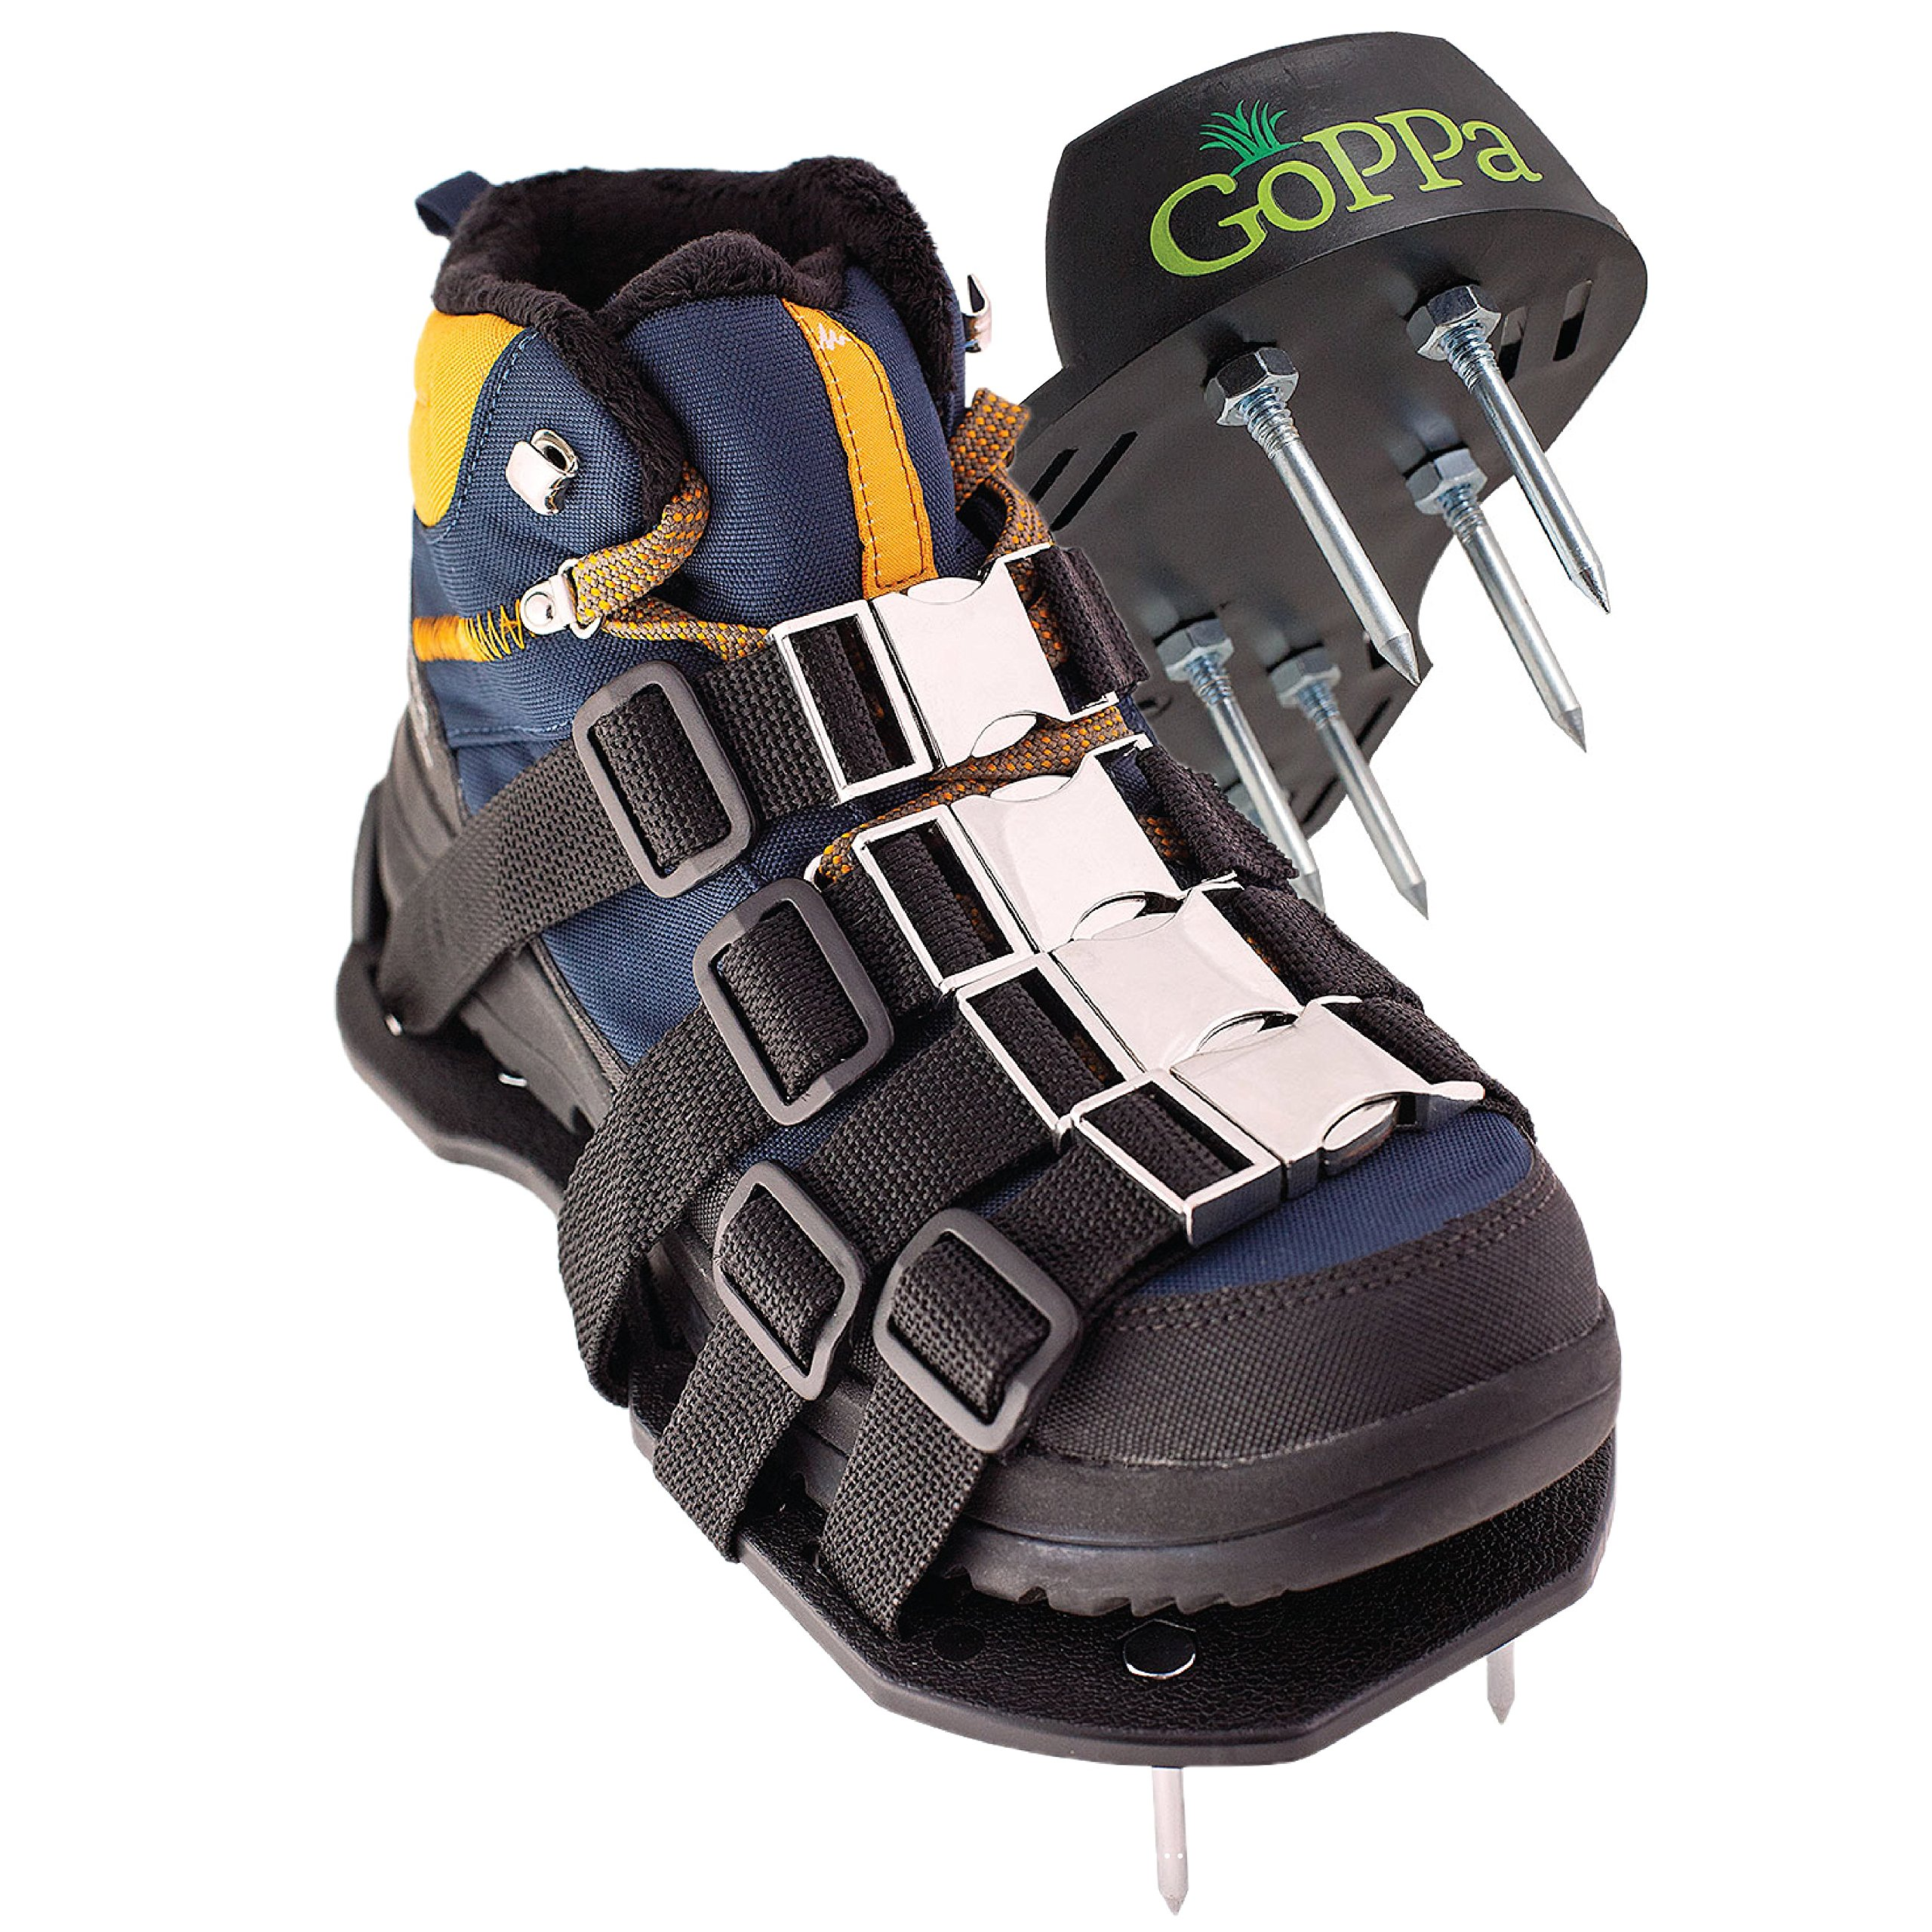 GoPPa Lawn Aerator Shoes - Strong - Fully Assembled Lawn Sandal, You only FIT Once on Your Gardening Shoes. Ready for aerating Your Yard, Lawn, Roots & Grass